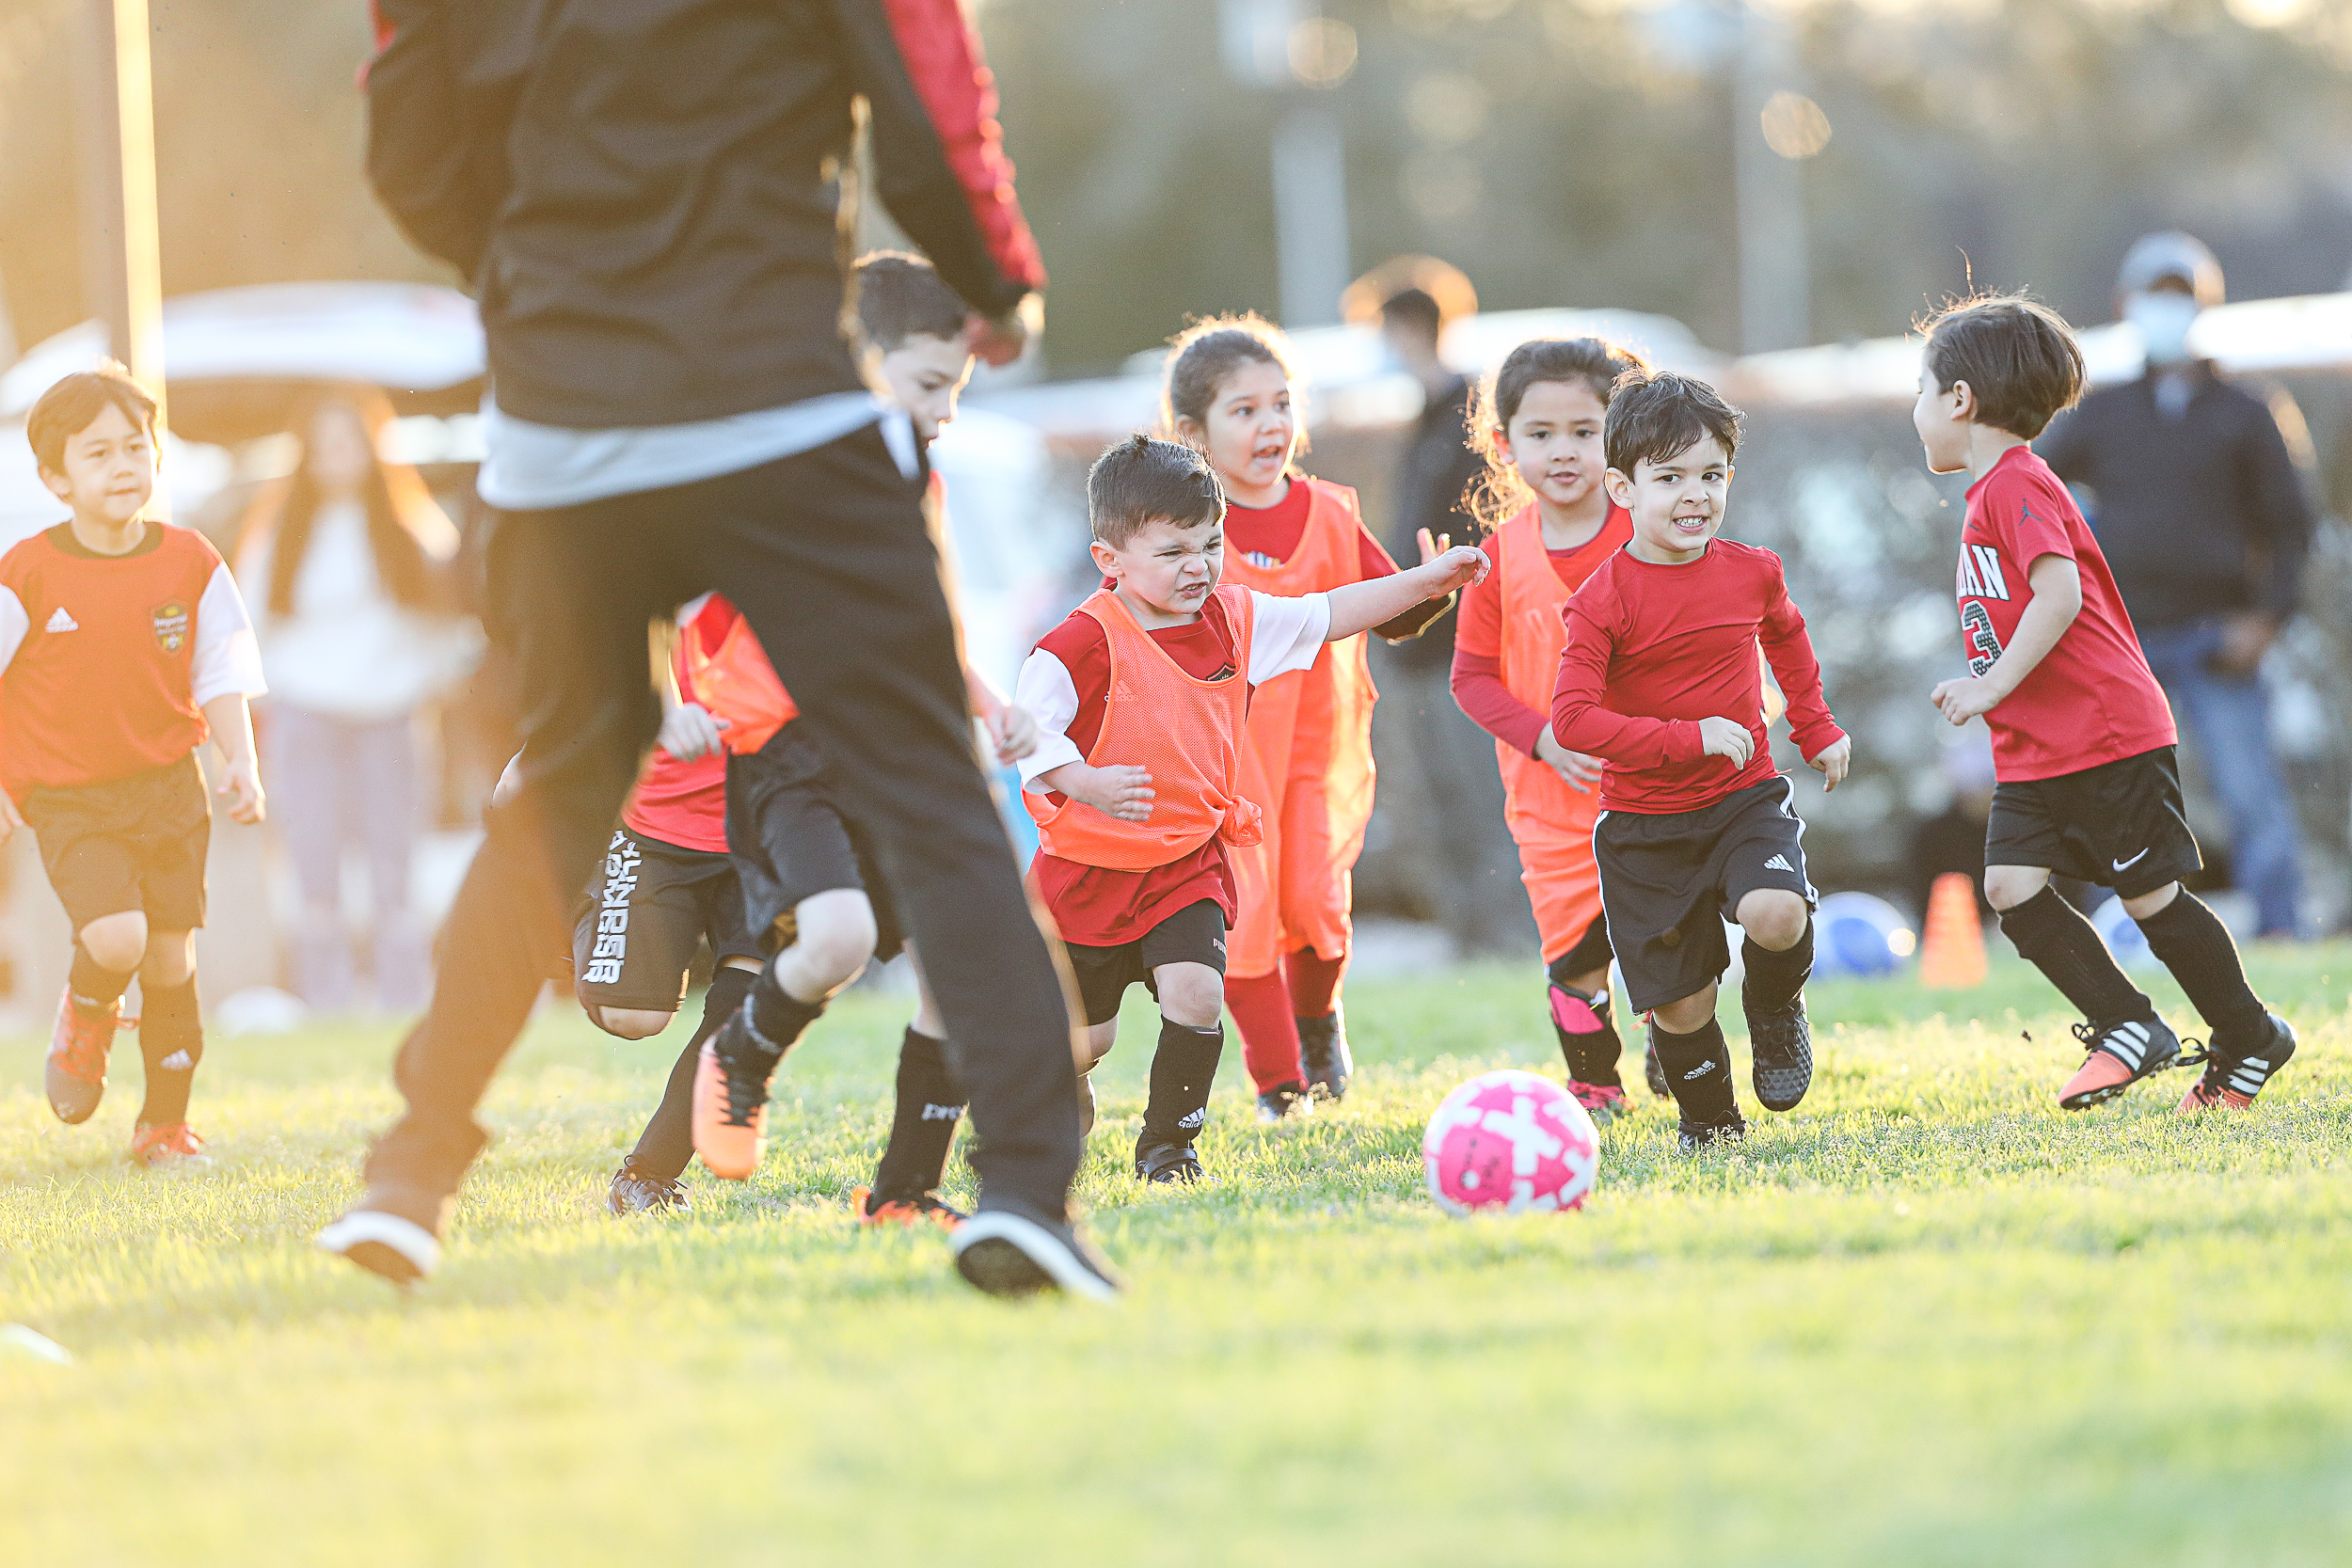 Imperial Soccer Club - Select Soccer - Recreational Soccer - Competitive Soccer - Academy Soccer